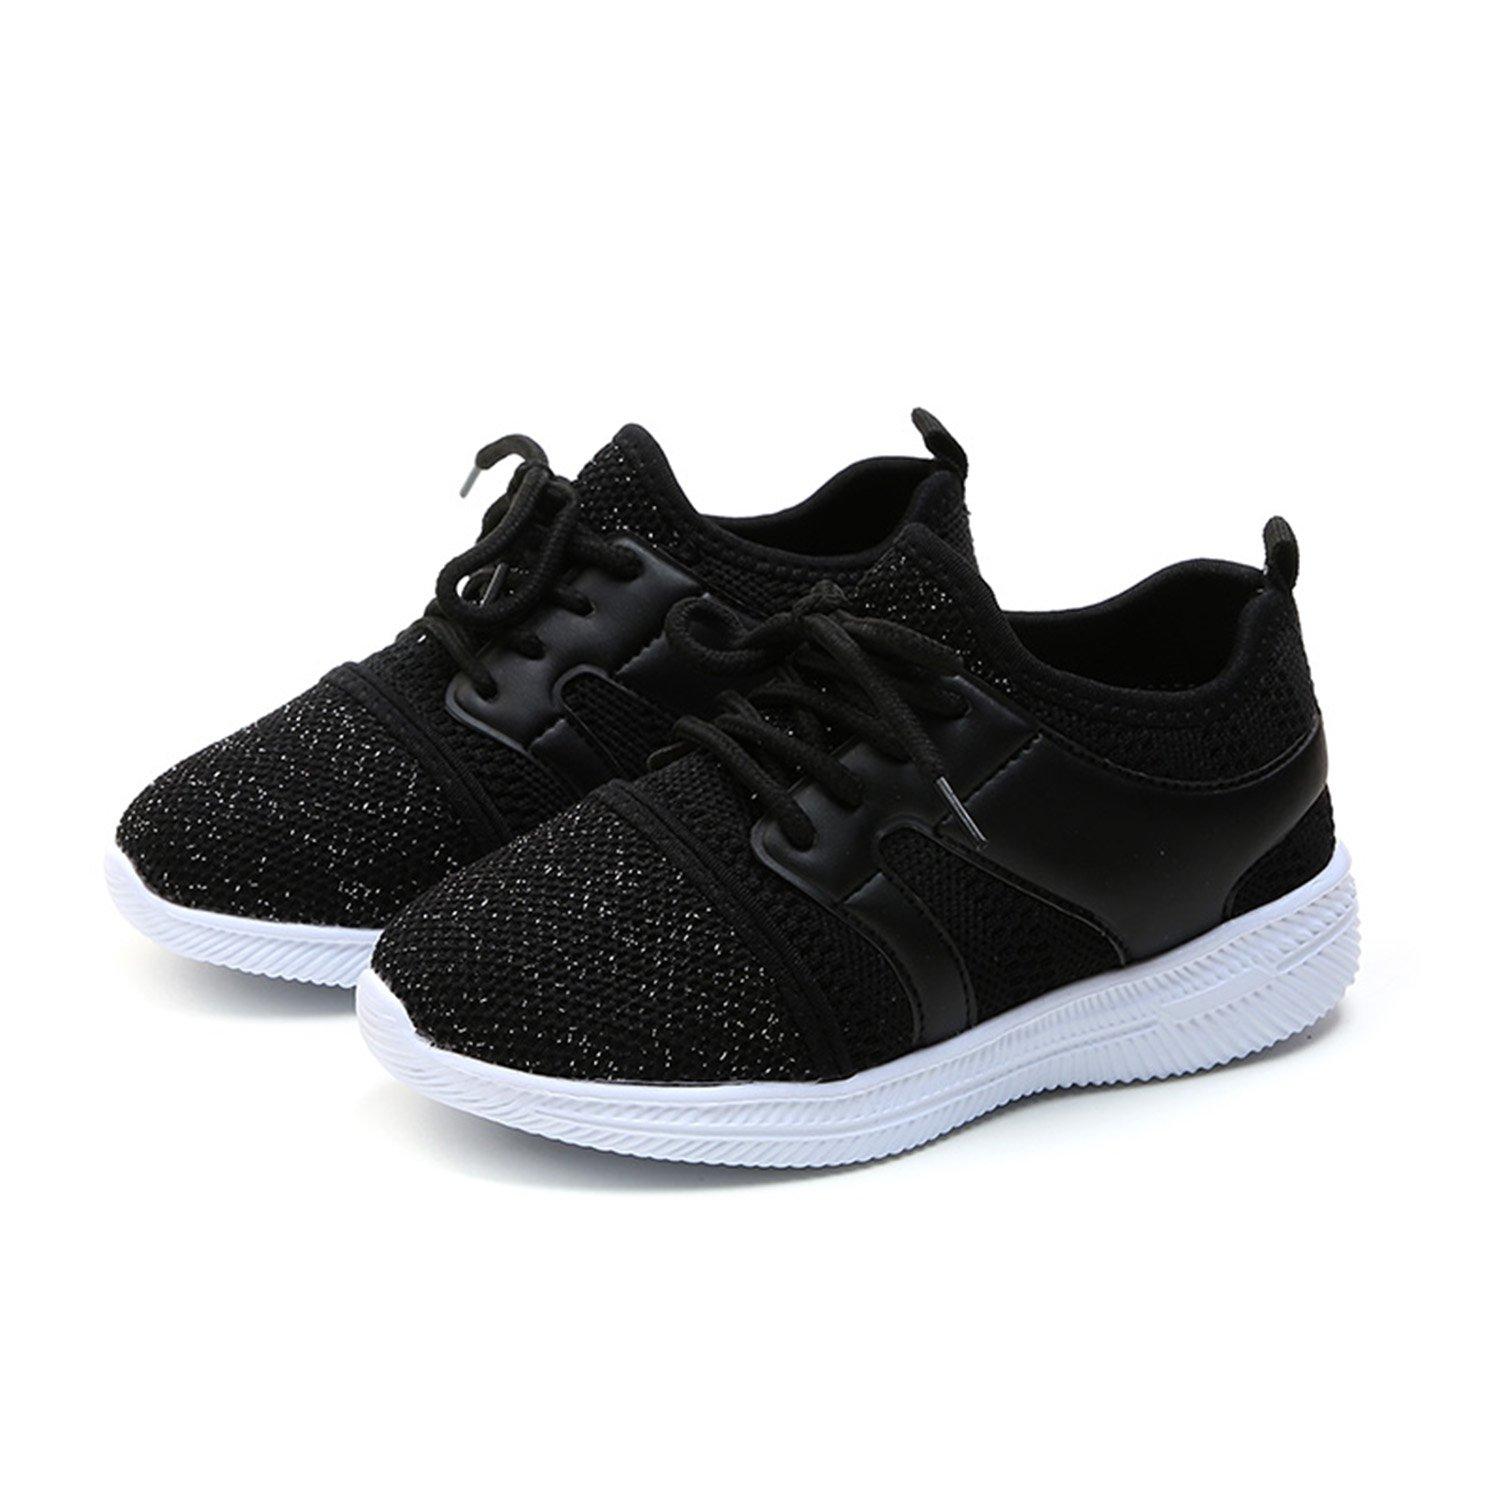 UBEY Kids Lightweight Breathable Running Sneakers Sport Casual Shoes for Boys Girls 11M US Little Kid, Black